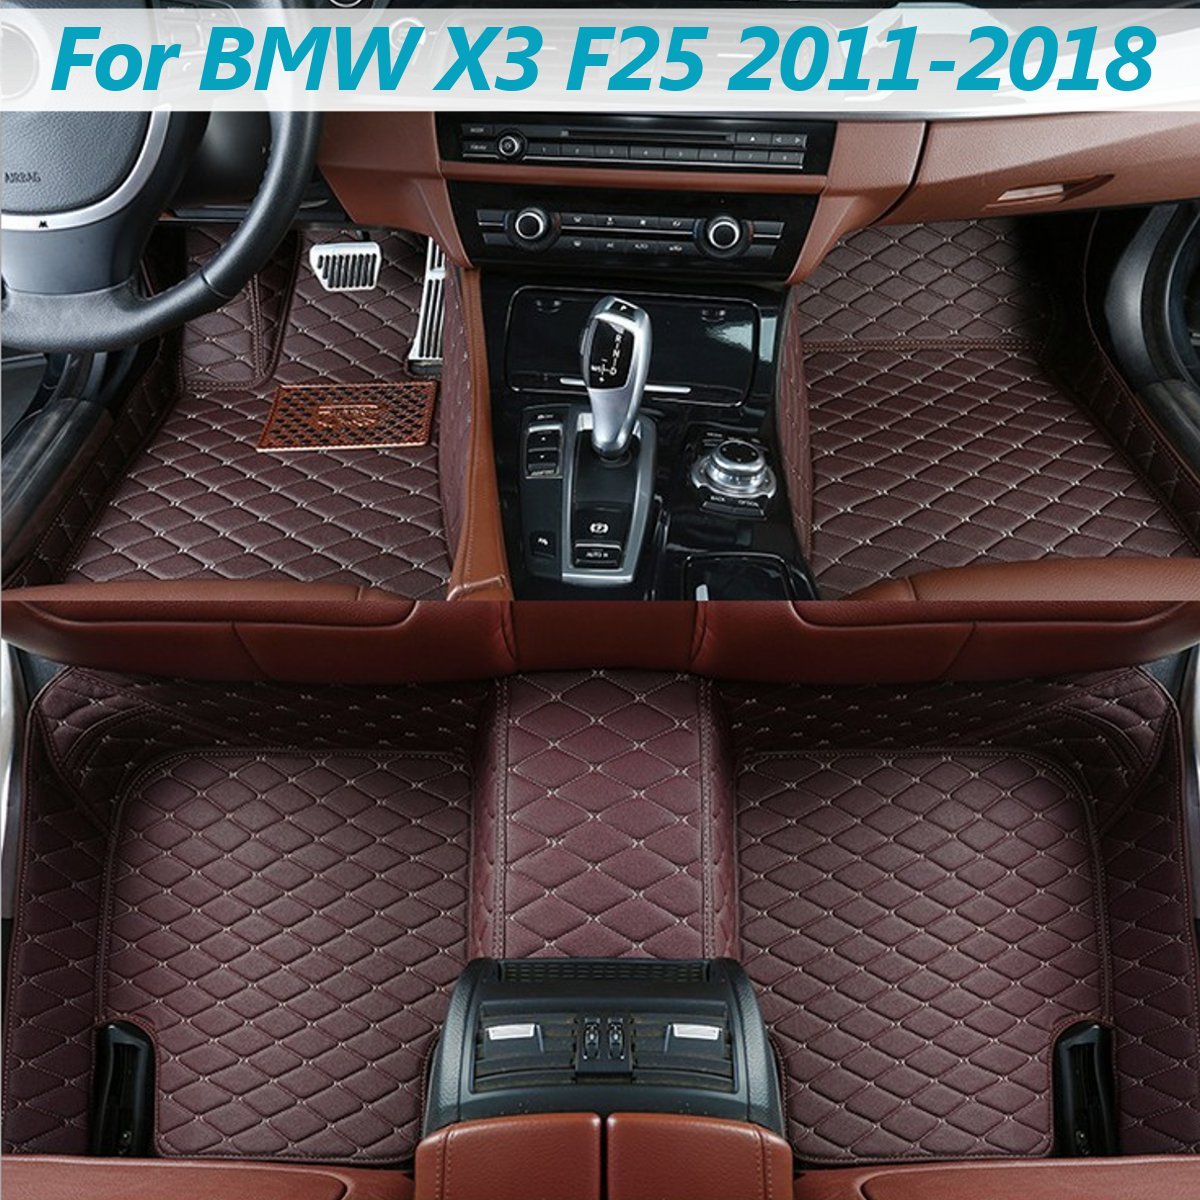 Car Leather Front Rear Floor Mats Set Liner Waterproof 5 Seat Mat For BMW X3 F25 2011 2012 2013 2014 2015 2016 2017 2018Car Leather Front Rear Floor Mats Set Liner Waterproof 5 Seat Mat For BMW X3 F25 2011 2012 2013 2014 2015 2016 2017 2018